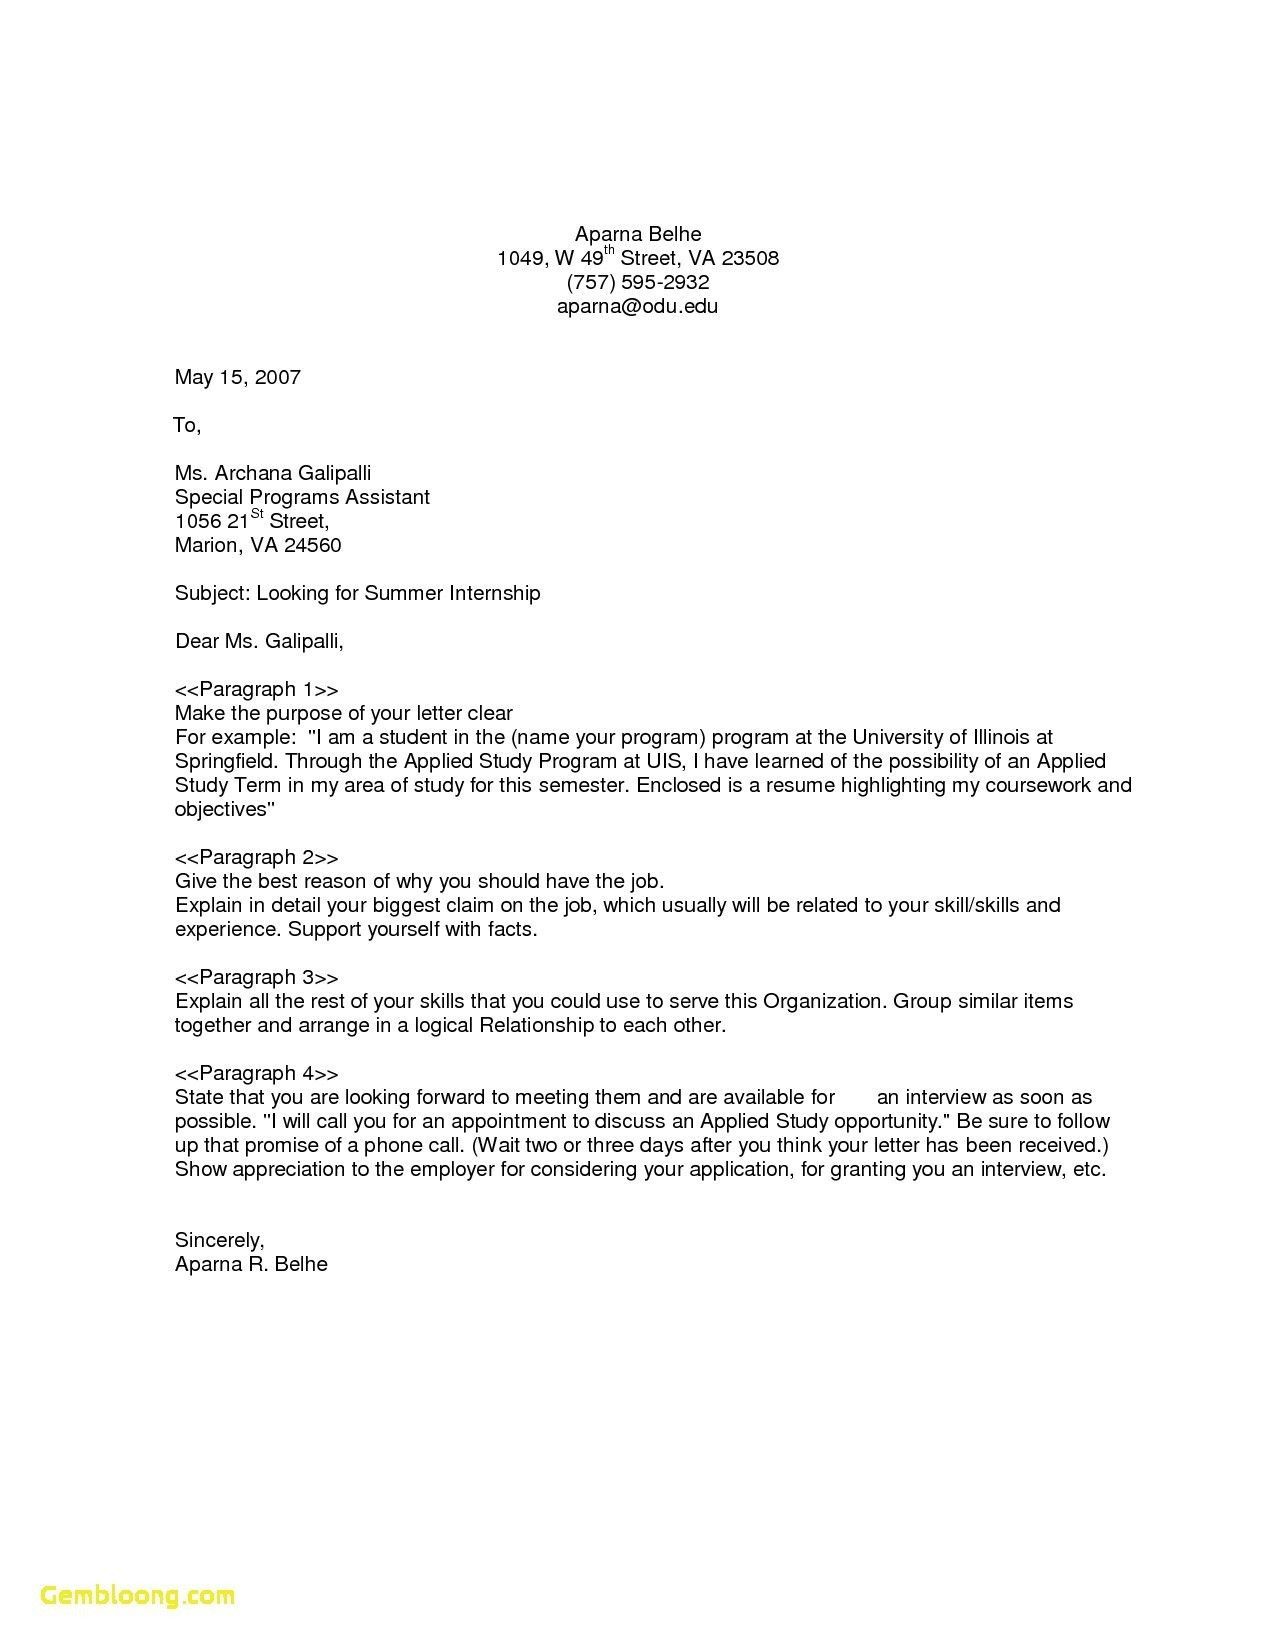 General Cover Letter Sample